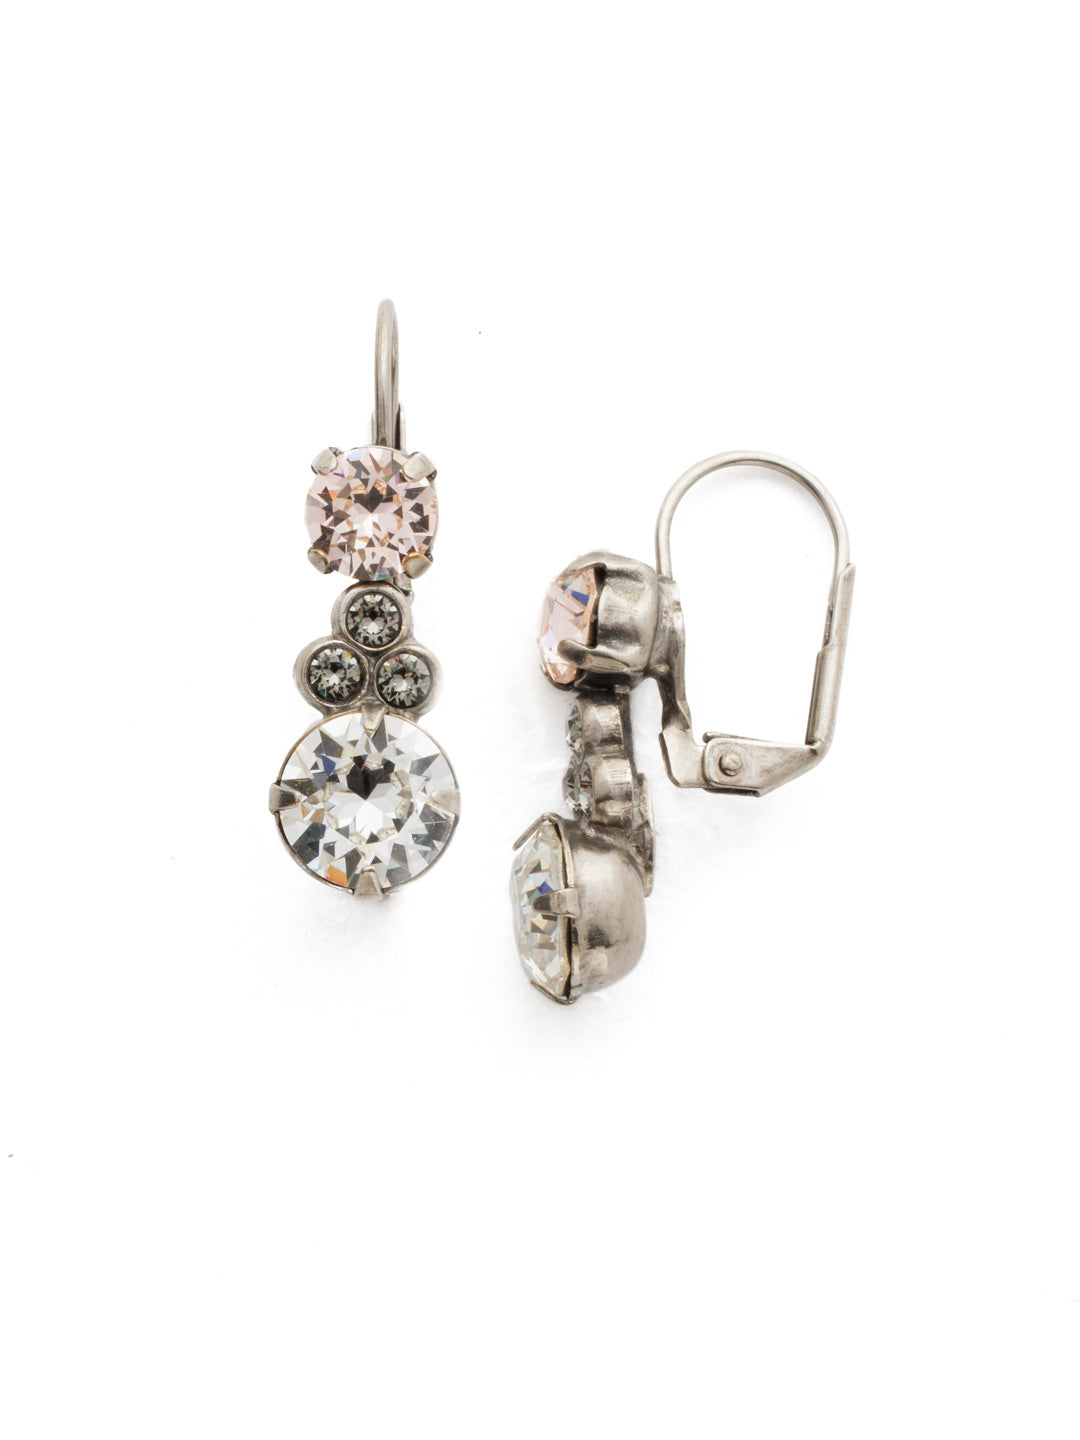 Clustered Circular Crystal Drop Earring - ECJ14ASSNB